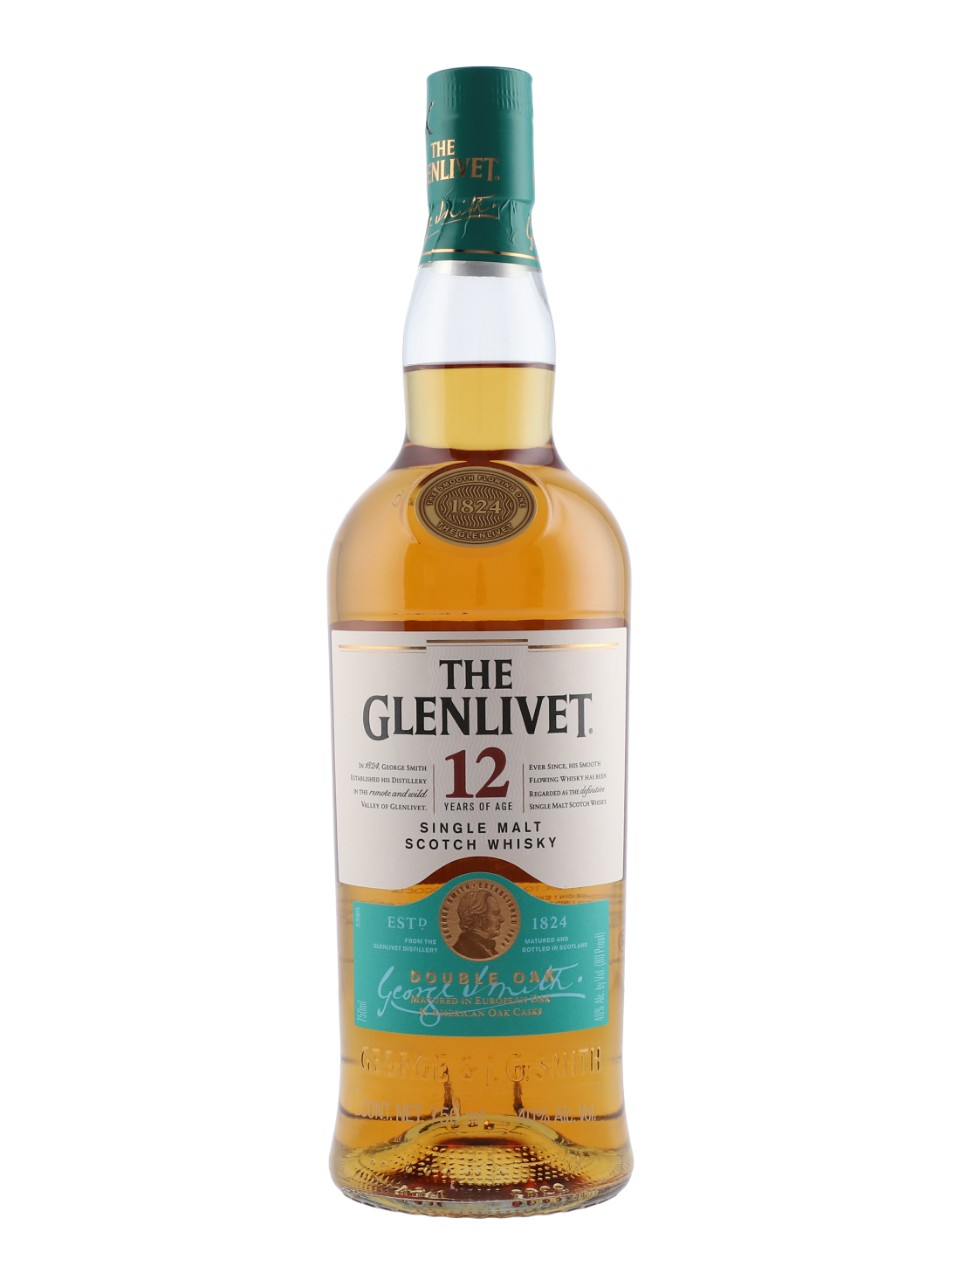 Whisky écossais Single Malt The Glenlivet 12 ans d'âge